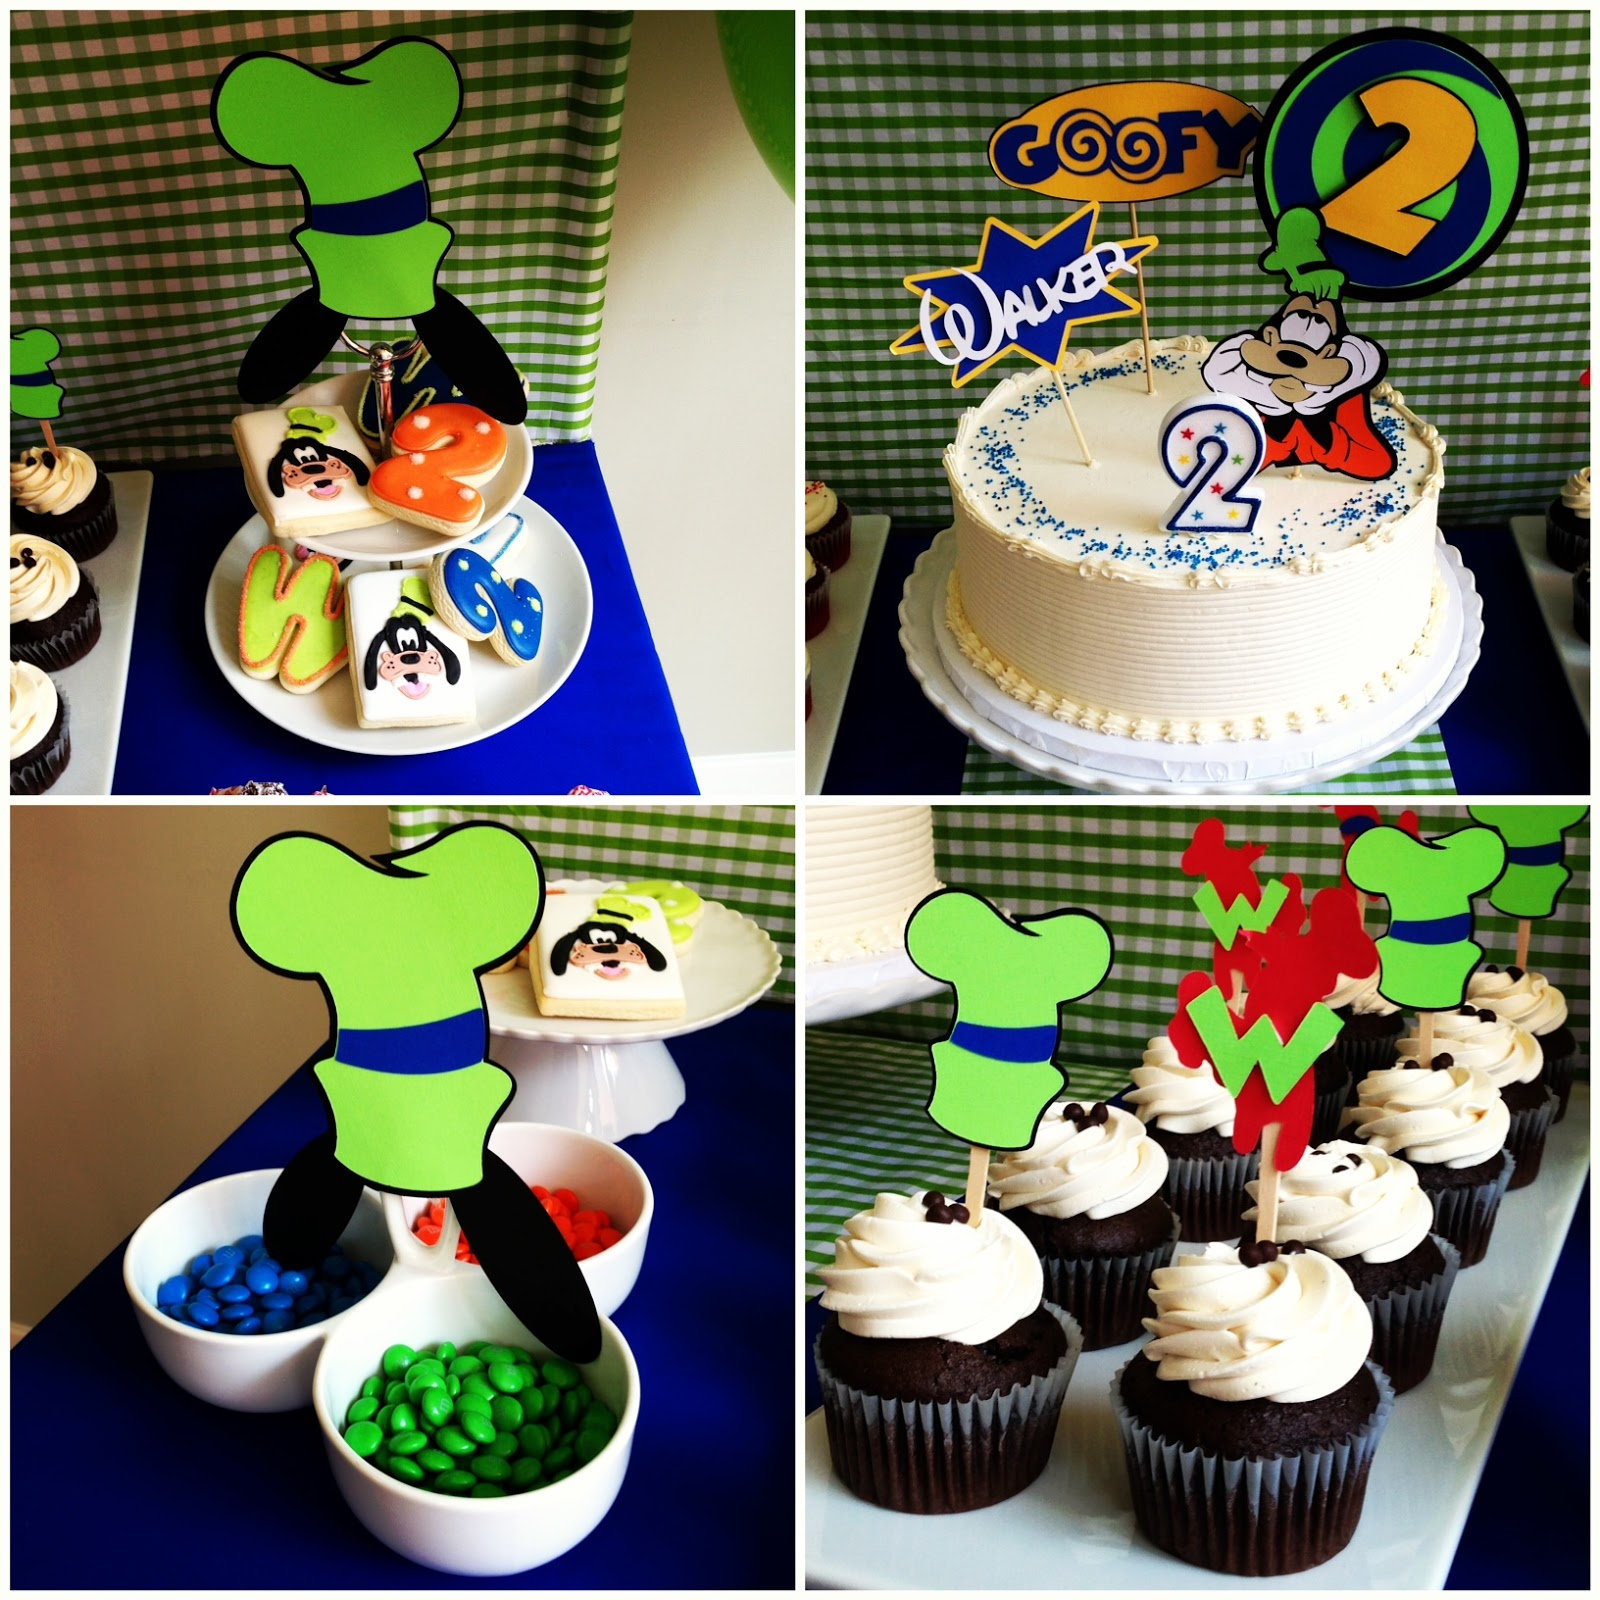 R R Creations Real Life Party Goofy Party